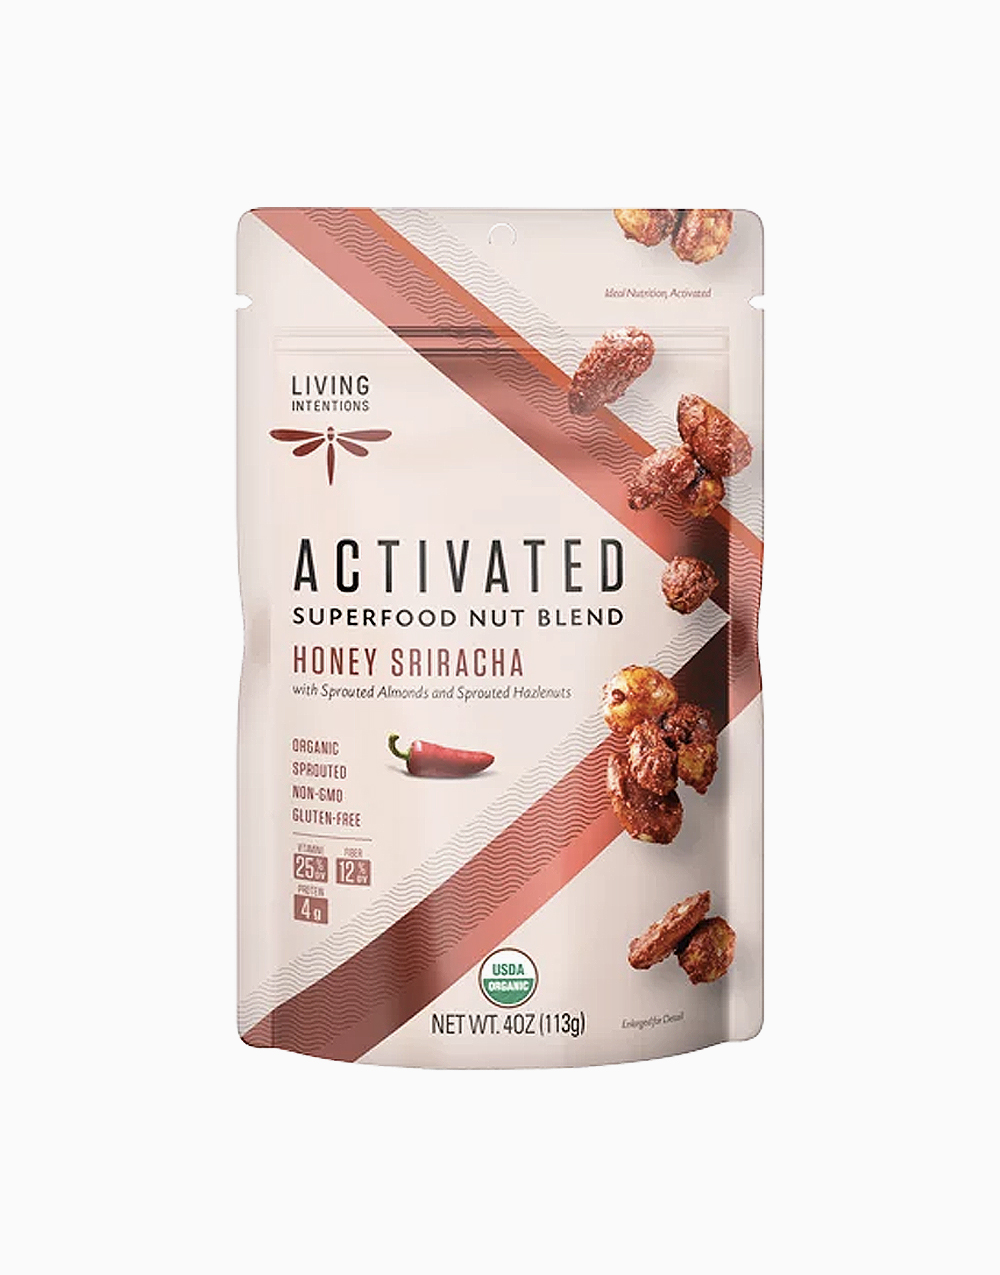 Honey Sriracha Activated Superfood Nut Blend by Living Intentions